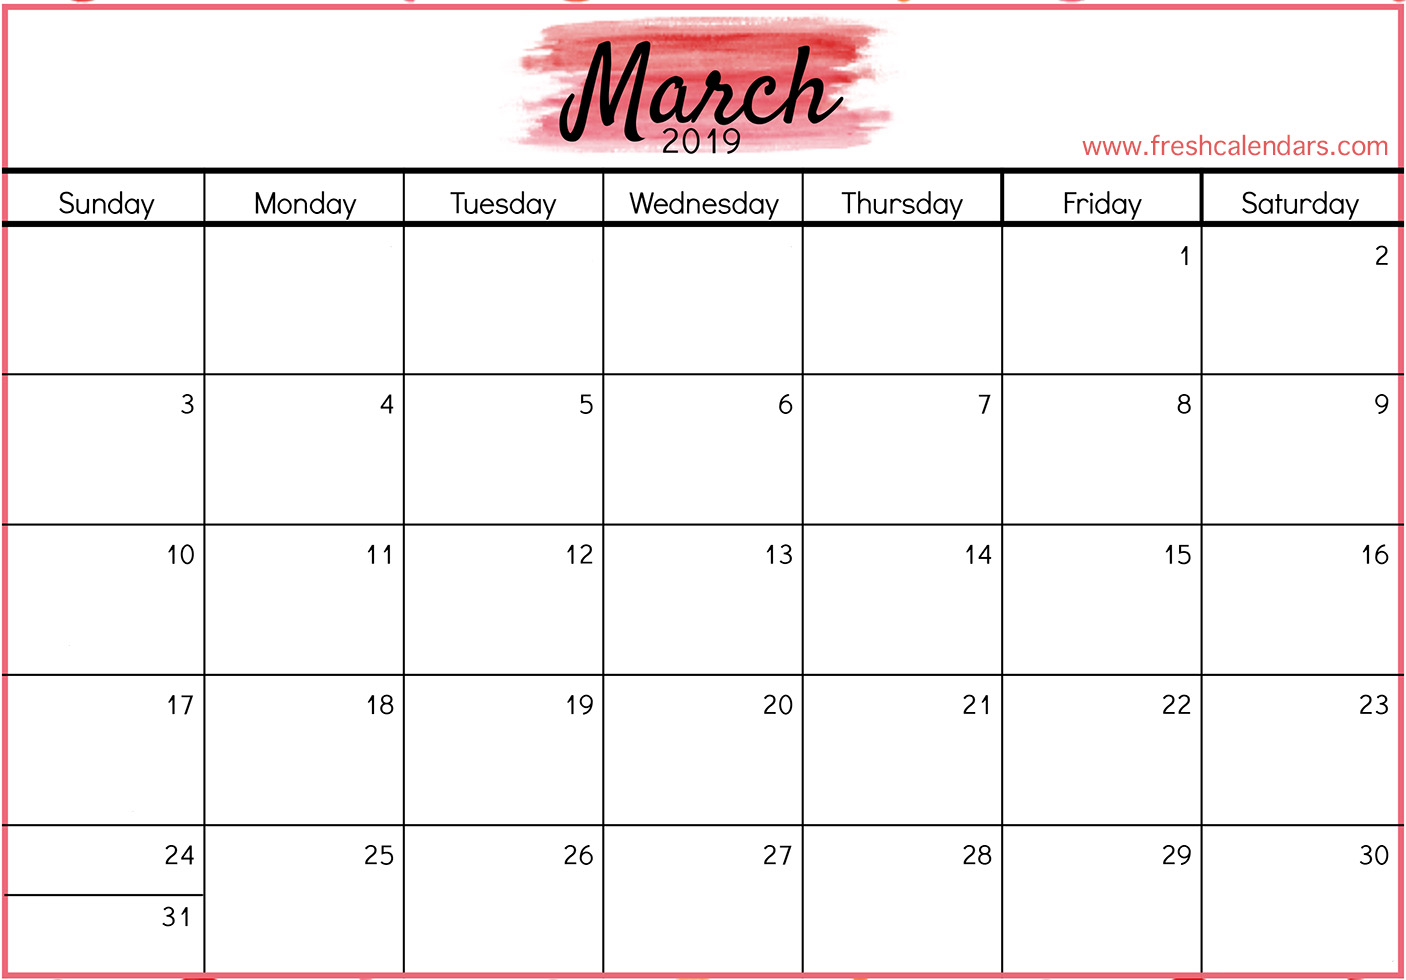 2019 March Calendar With Holidays